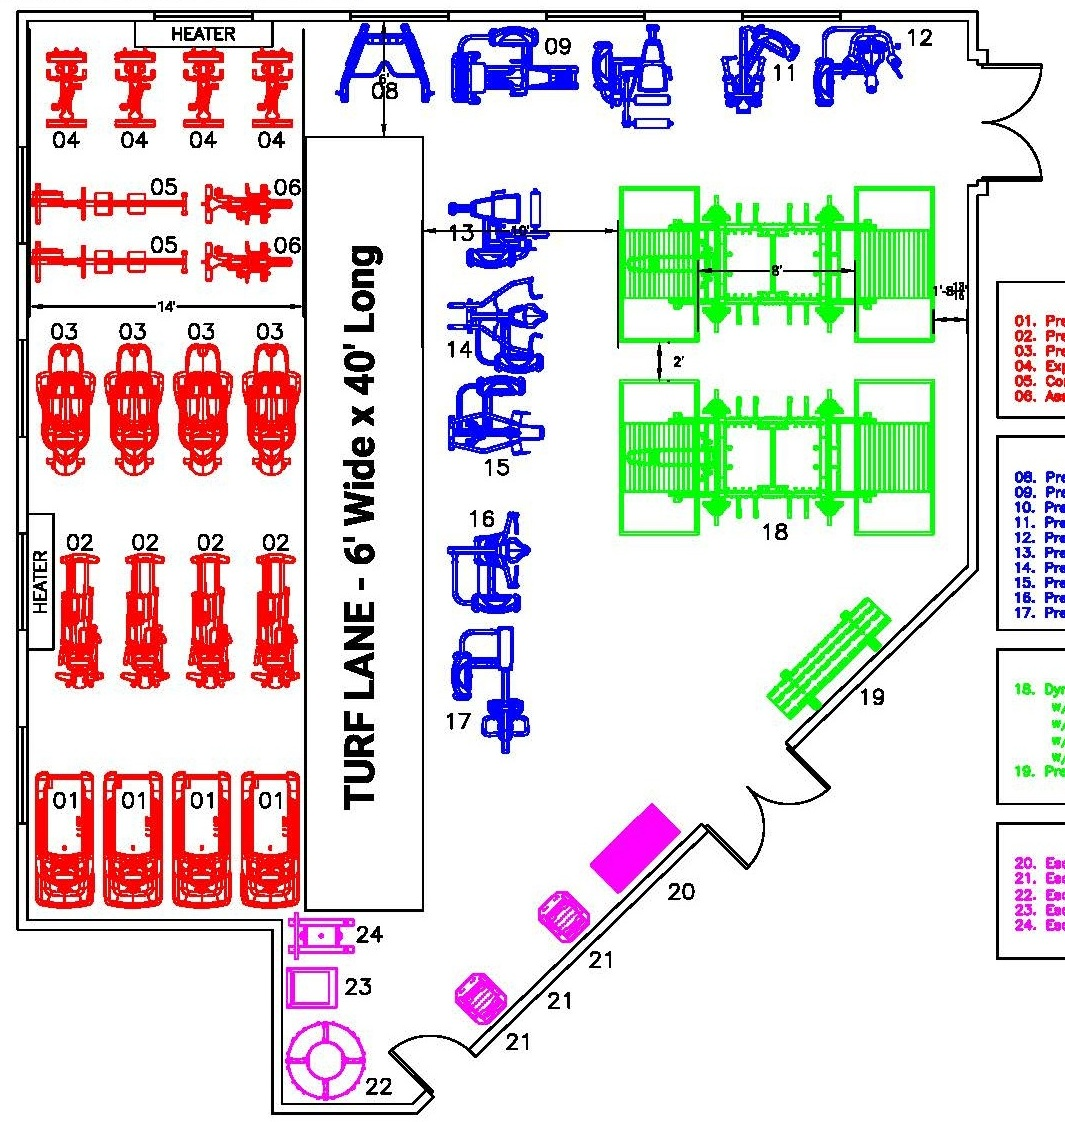 Final facility layout, completed in June 2019